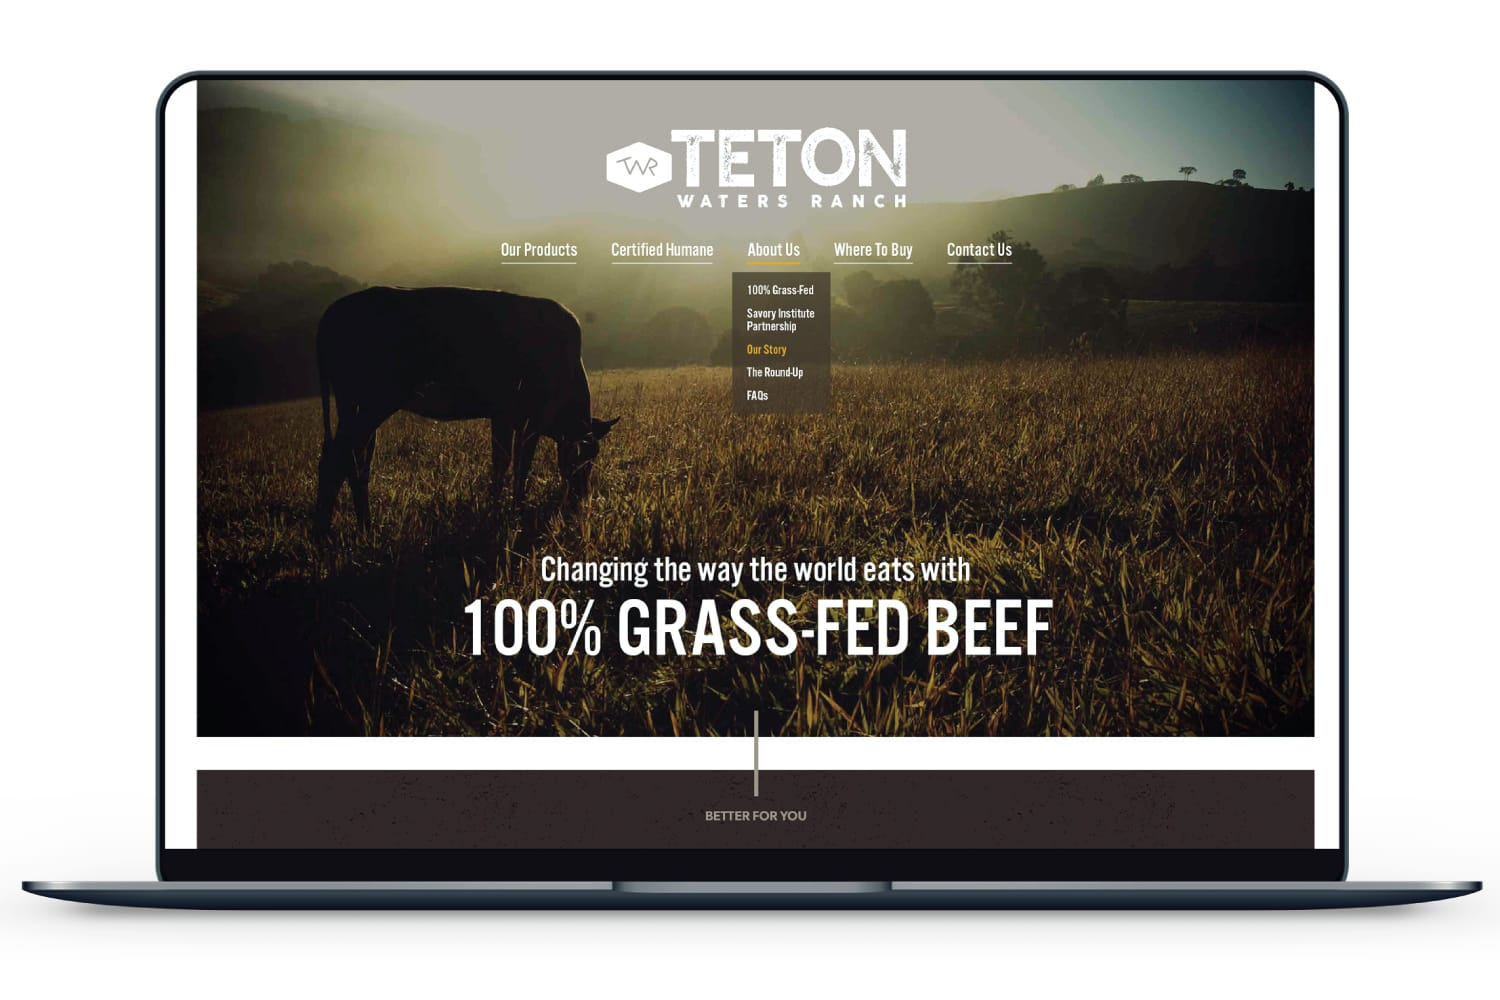 Teton Waters Ranch Website